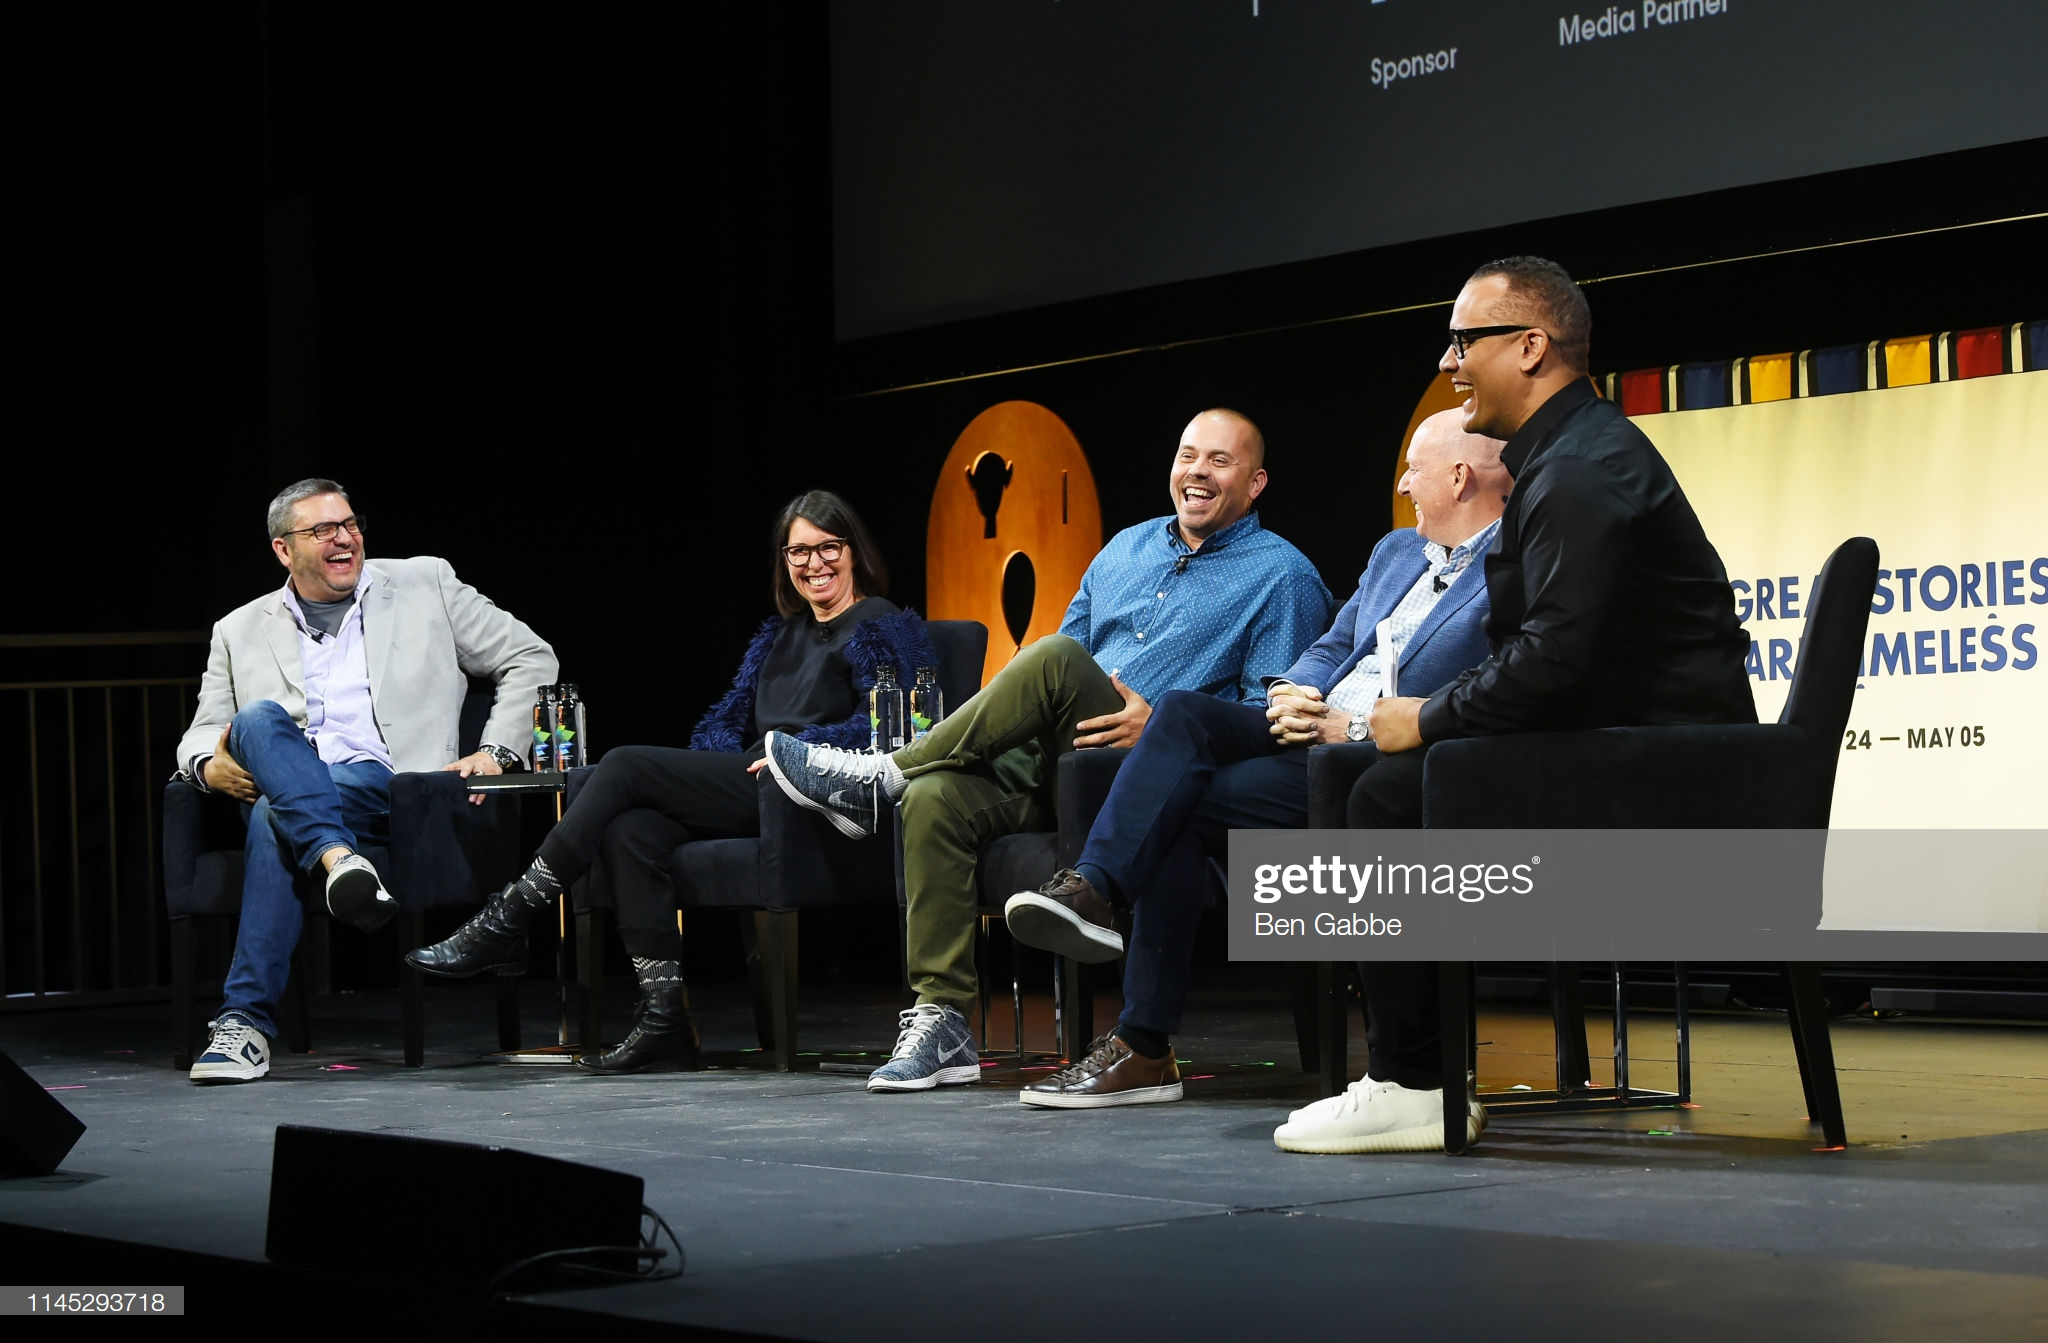 gettyimages-1145293718-2048x2048